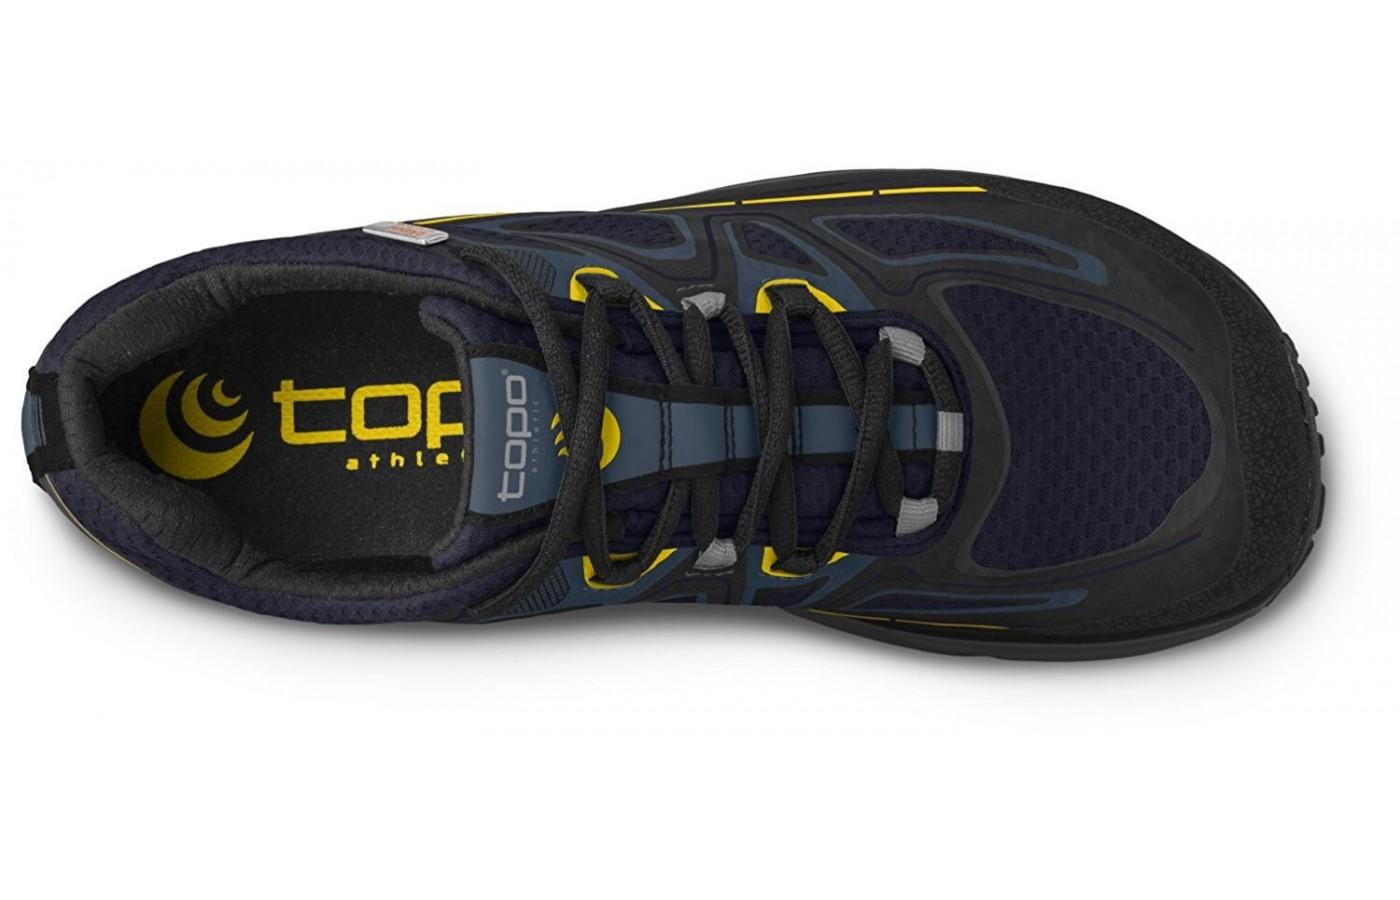 The shoe is lightweight and breathable.